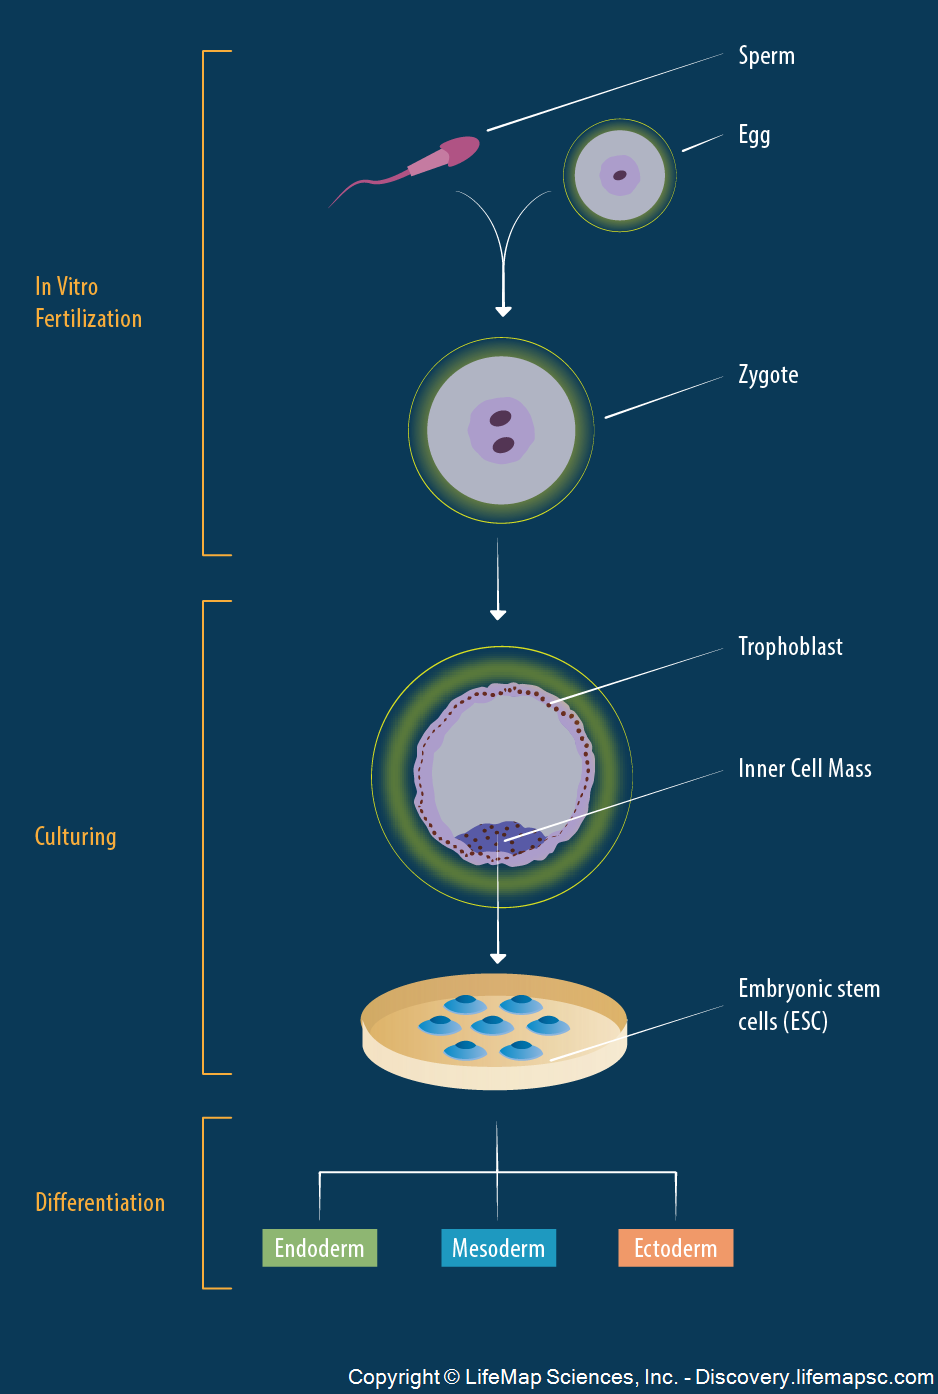 Derivation of Embryonic Stem Cells